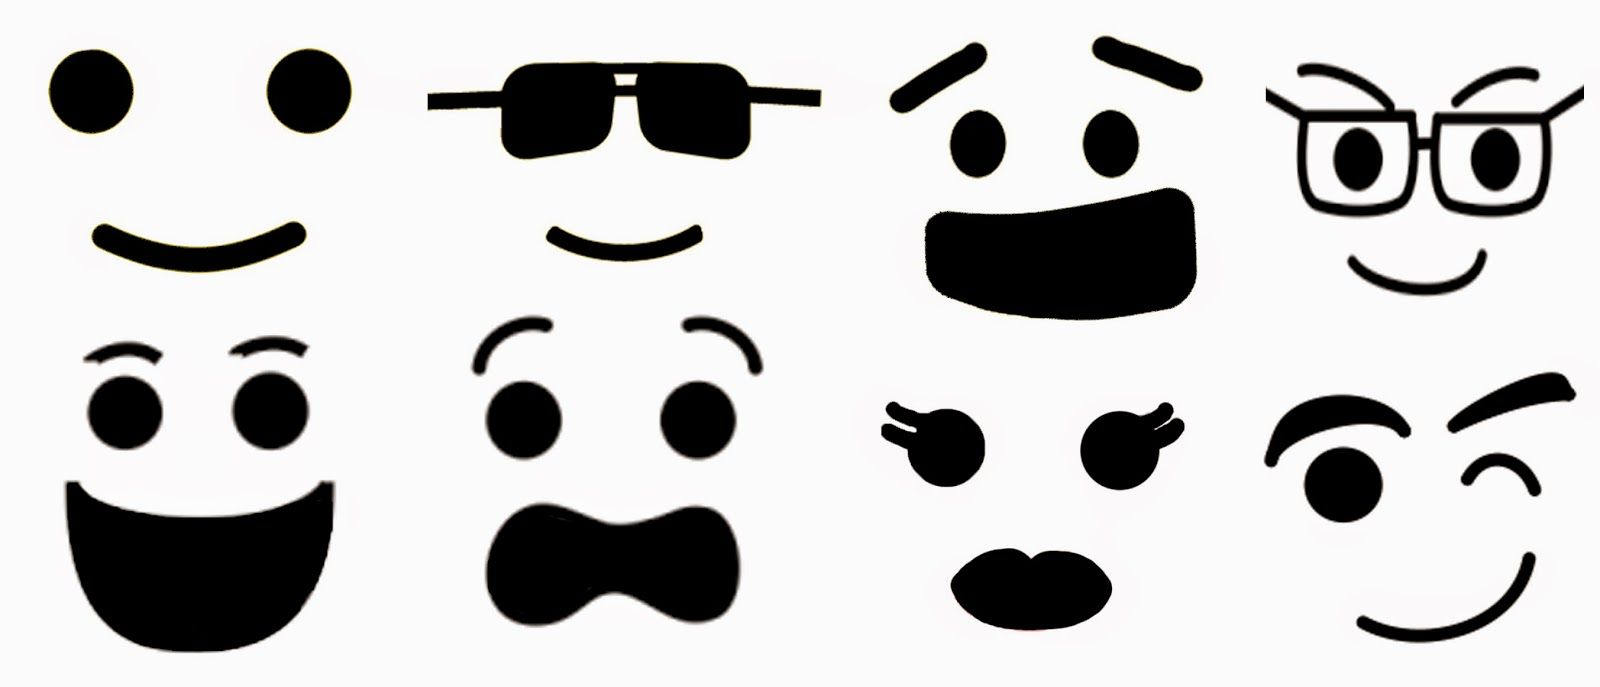 picture about Printable Lego Faces referred to as Lego Minifig faces Print on to apparent sticker paper, then position